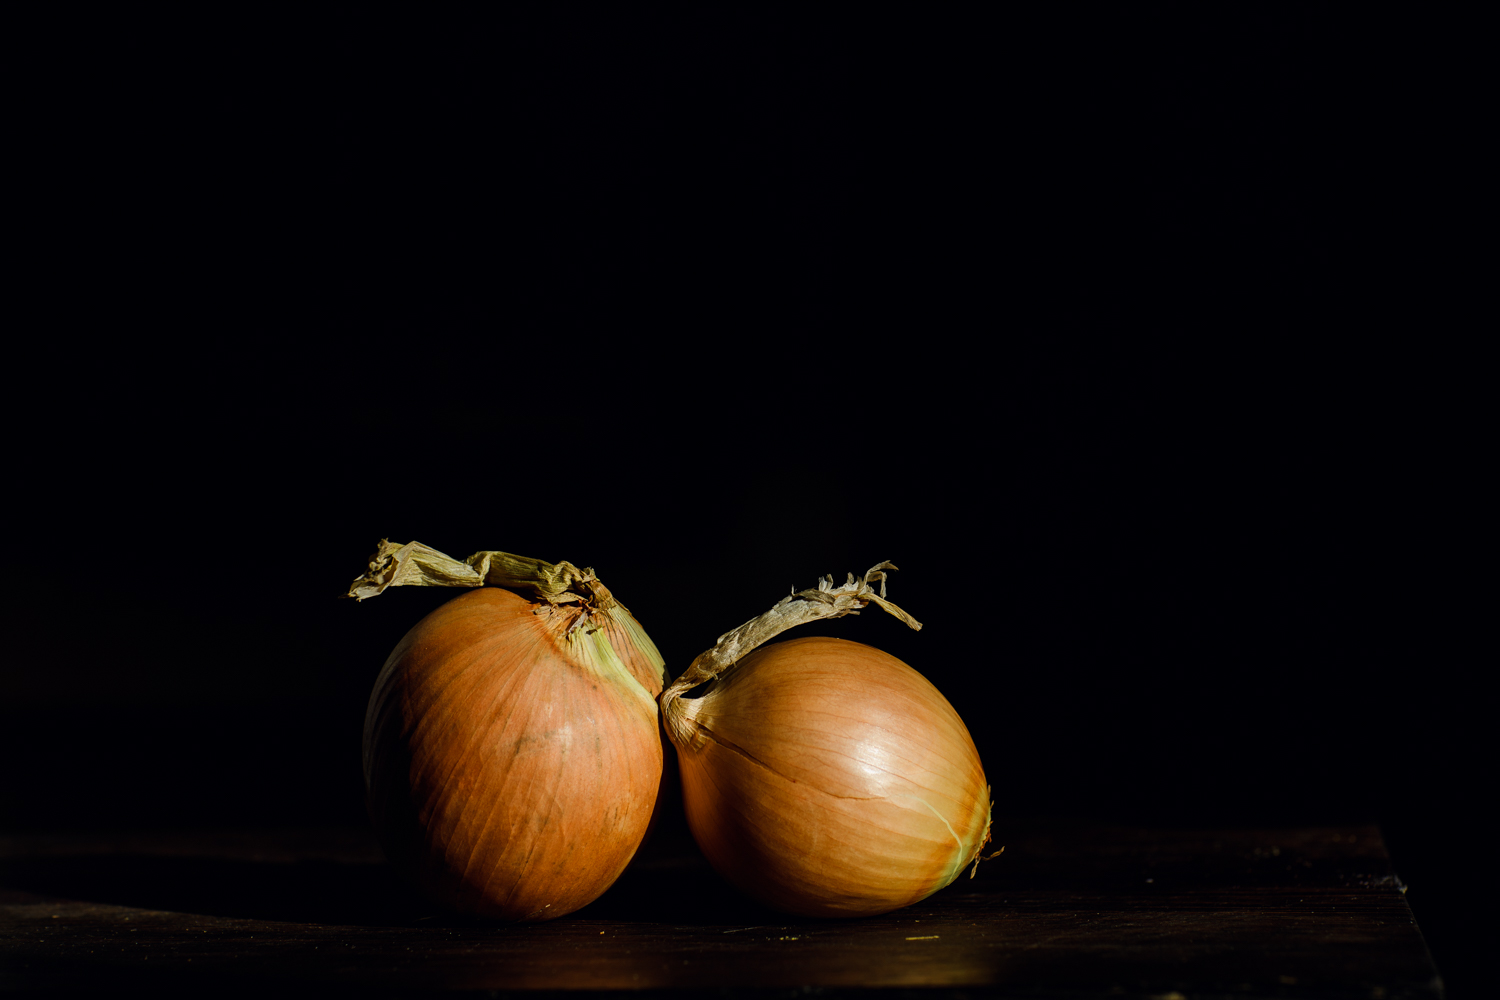 two onions on a cutting board